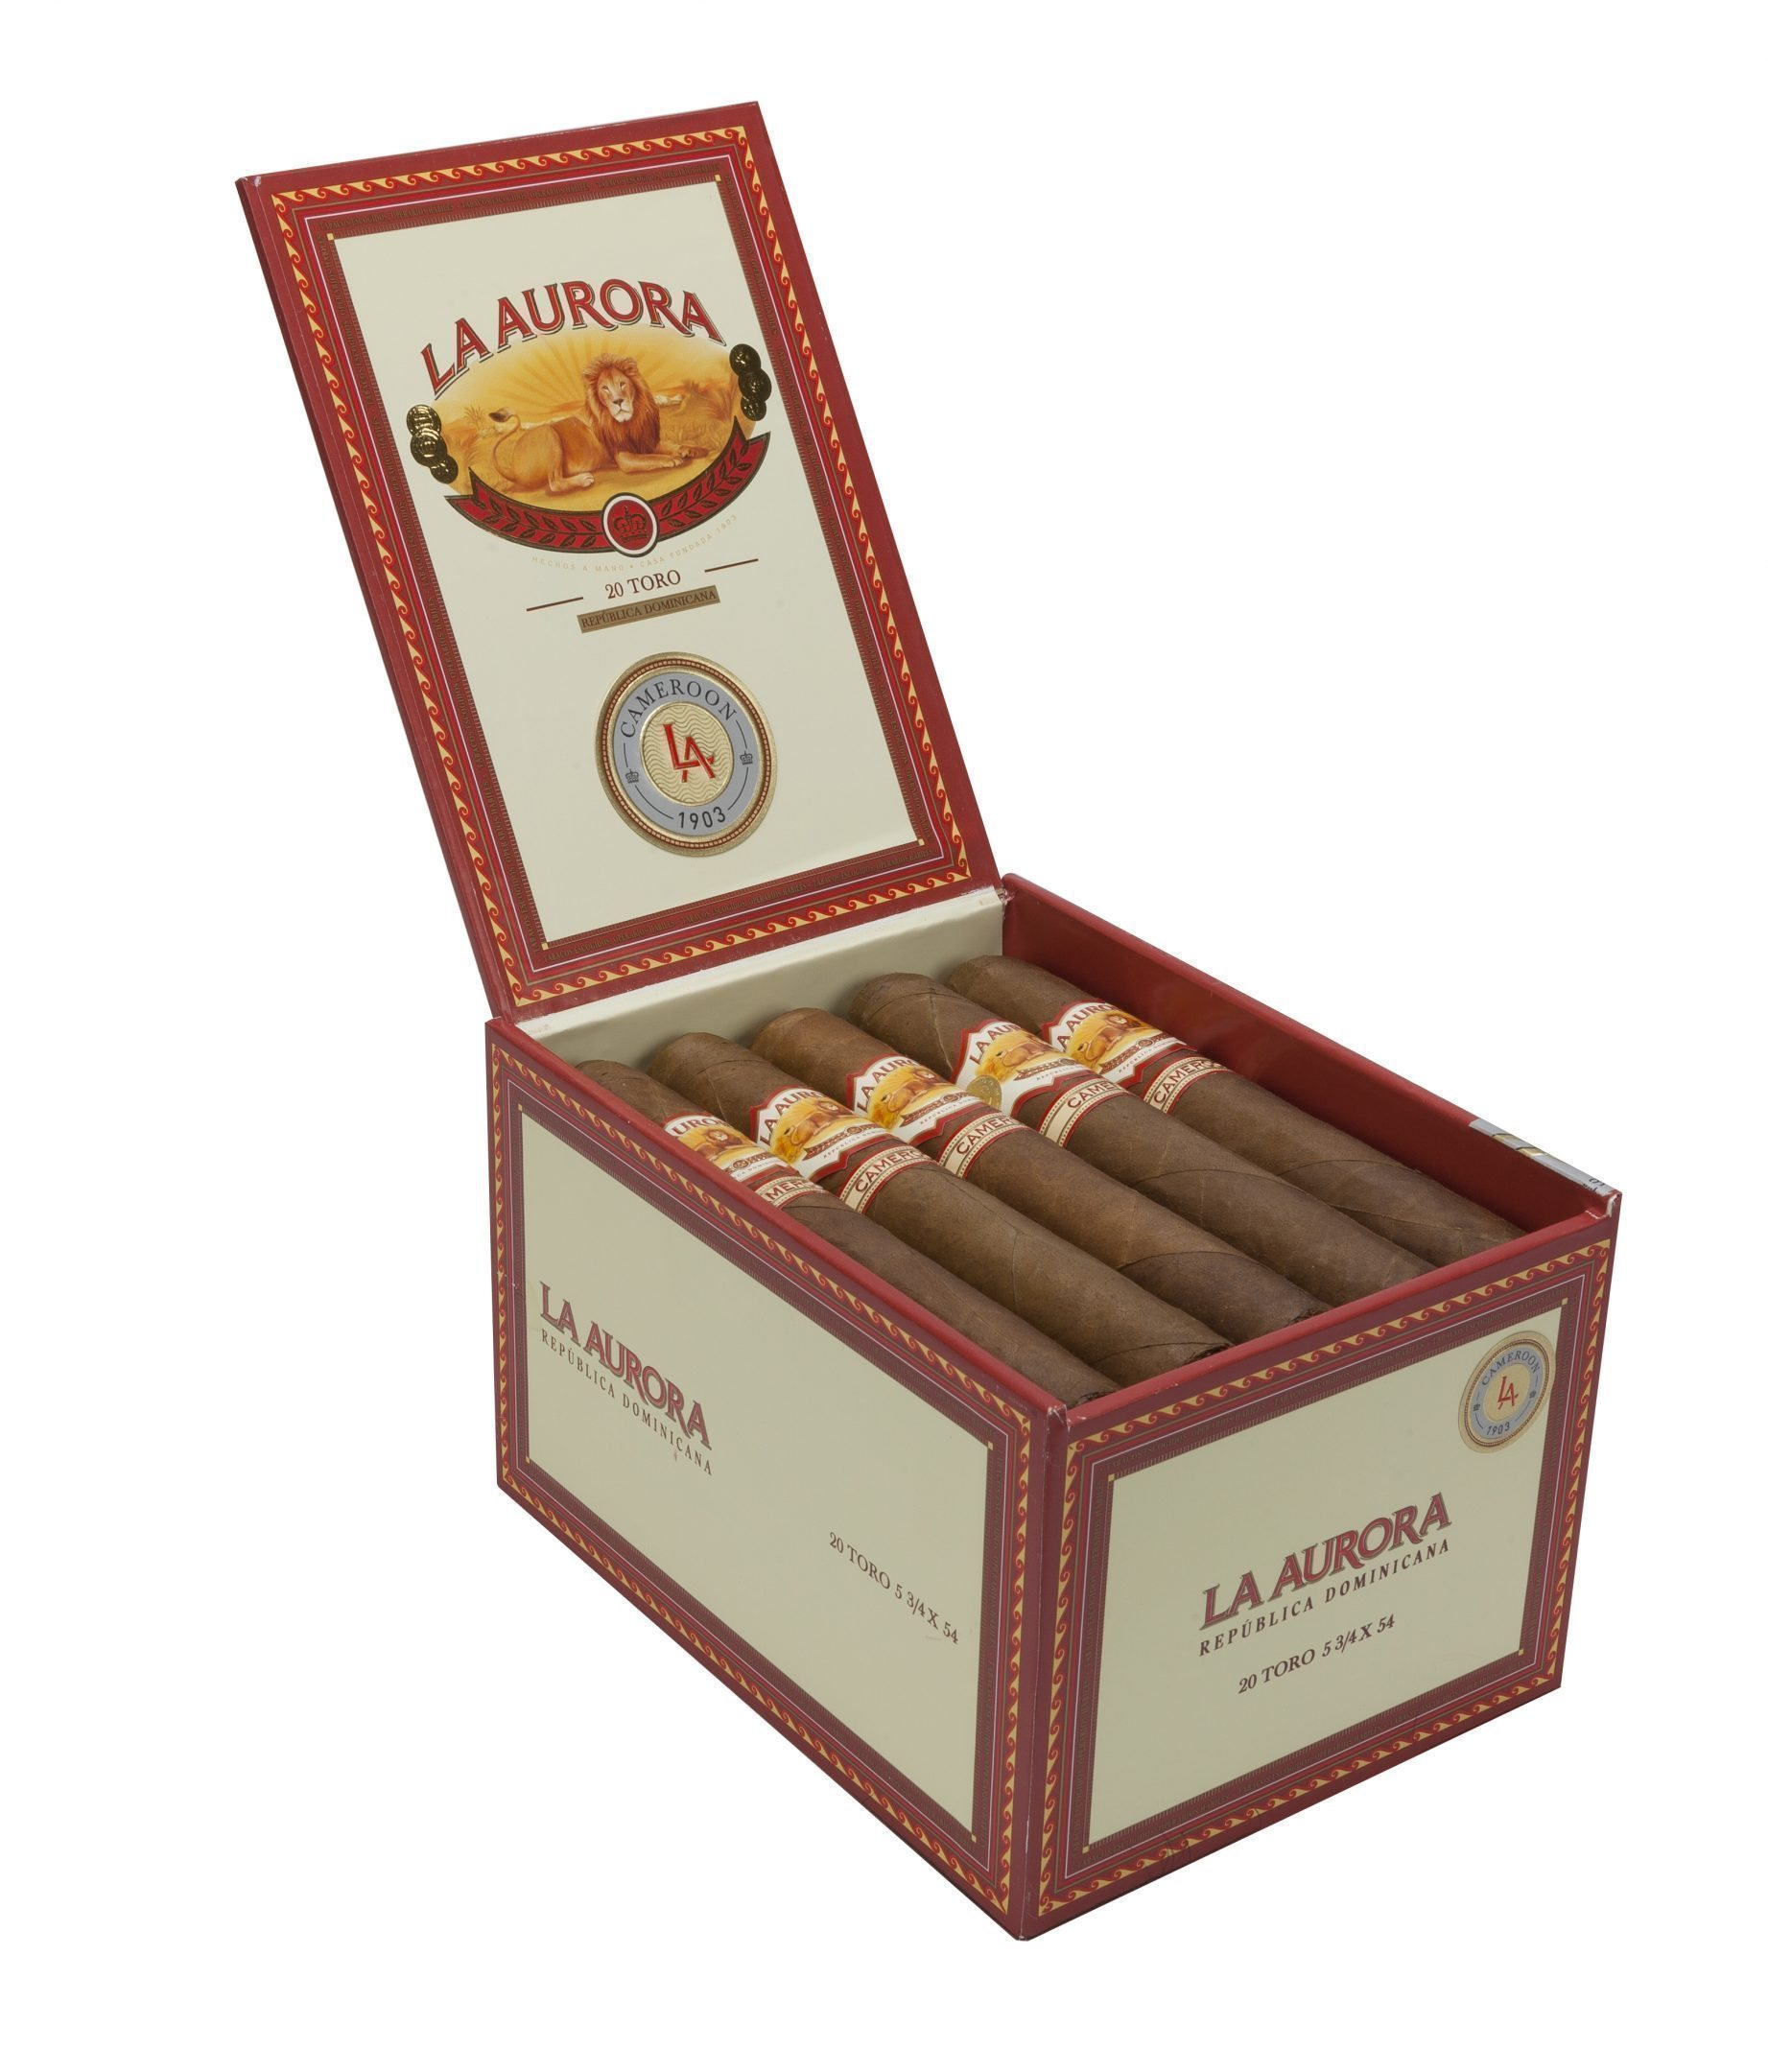 Cigar News: La Aurora Cameroon 1903 Shipping Now